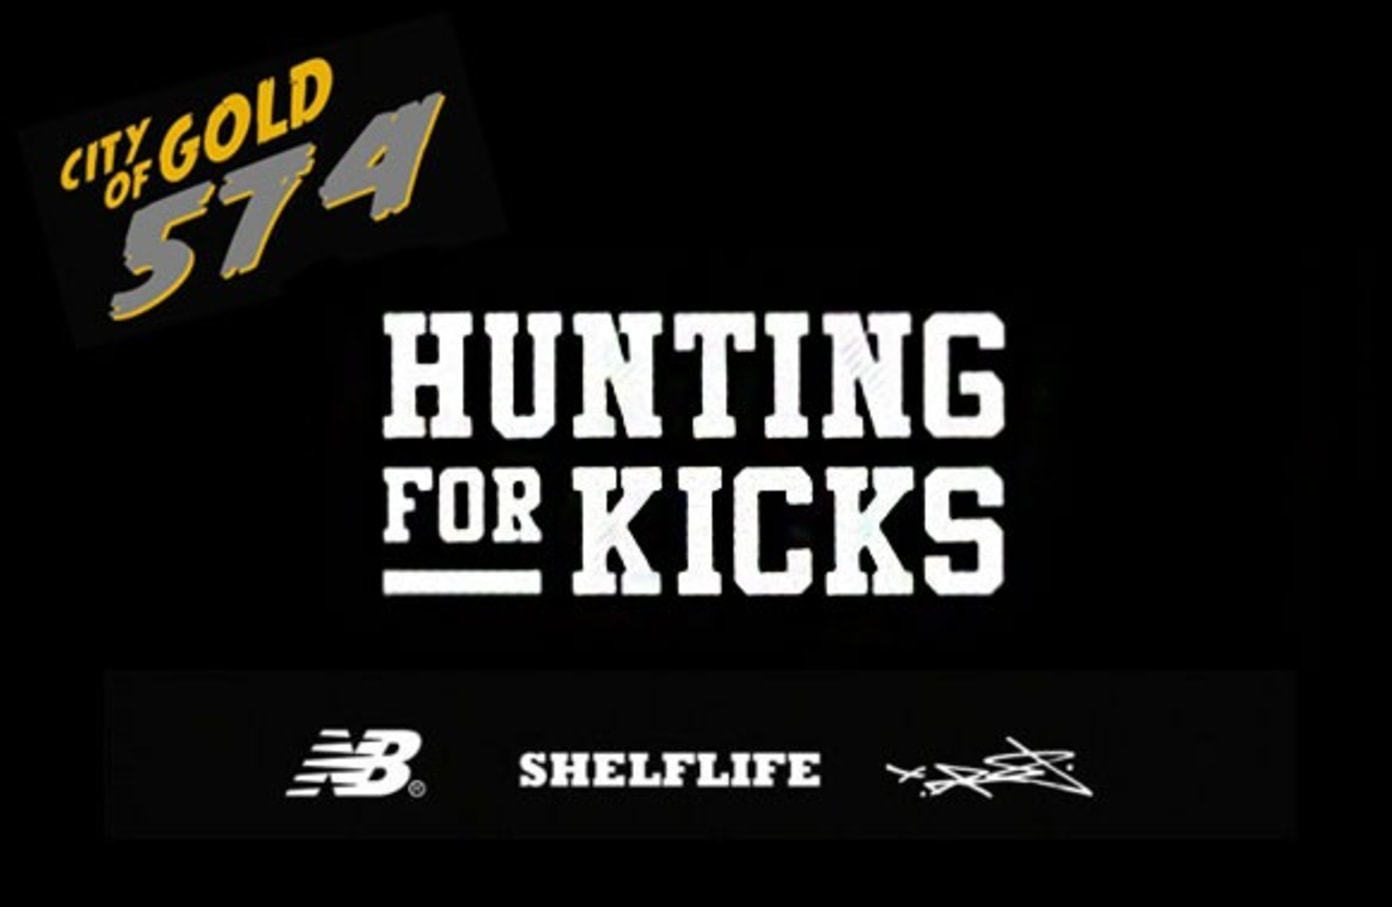 Hunting For Kicks Special Edition: New Balance x Shelflife x Dr.Z City of Gold 574